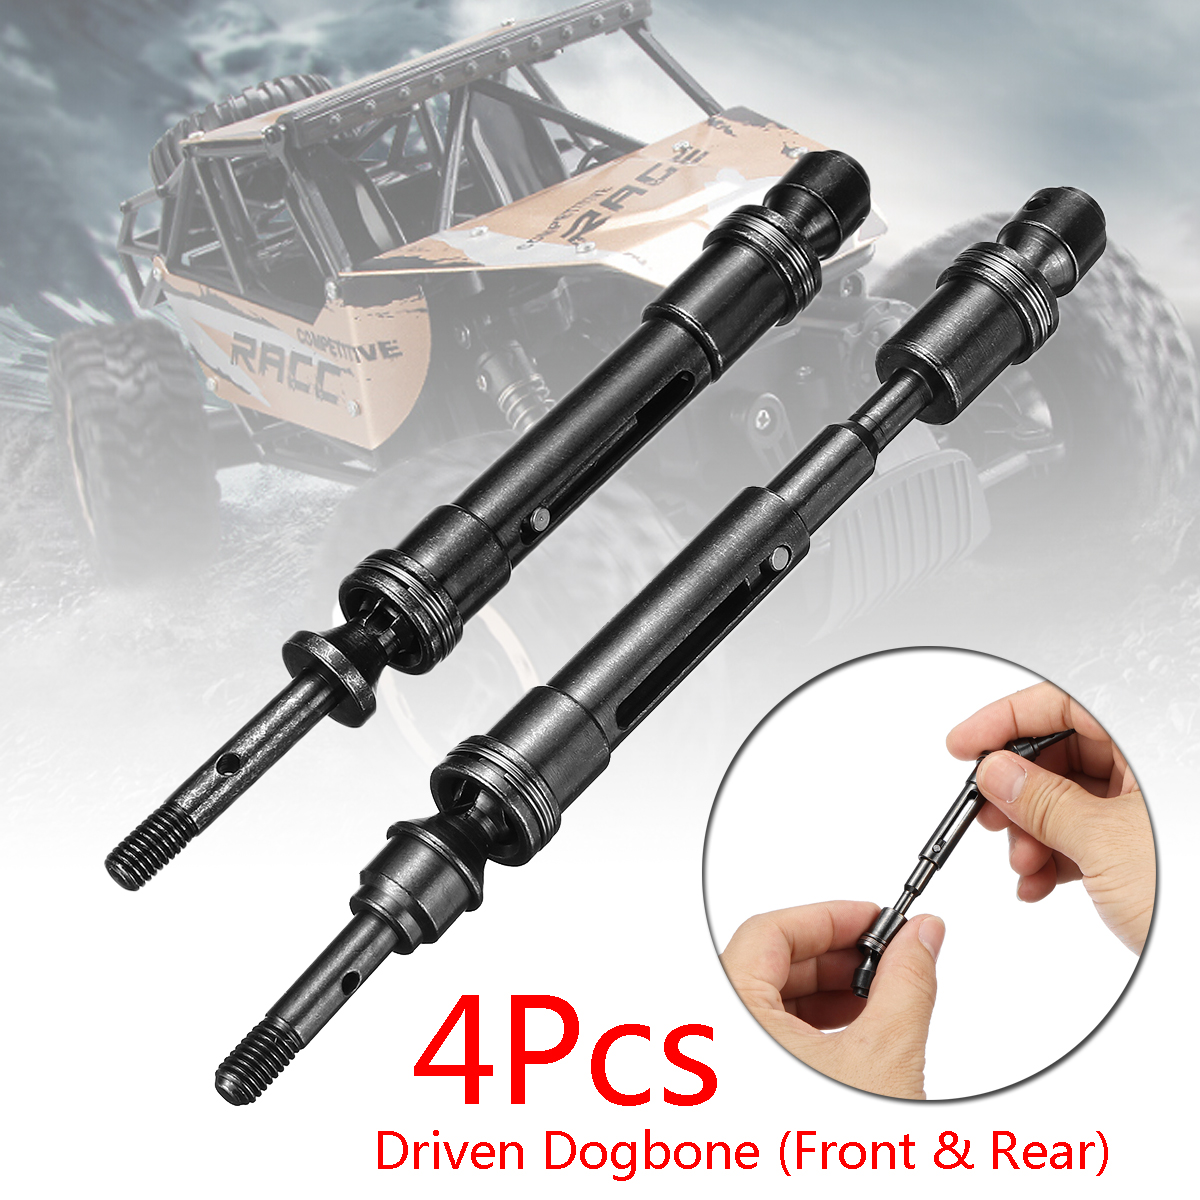 For Traxxas Slash 4X4 HQ727 Short Truck RC Car 4Pcs Drive Shaft Driven Dogbone High Speed Titanium Lightweight Upgrade 137x13mm 1 10 hq727 v2 traxxas slash short course truck parts number m0220 chassis